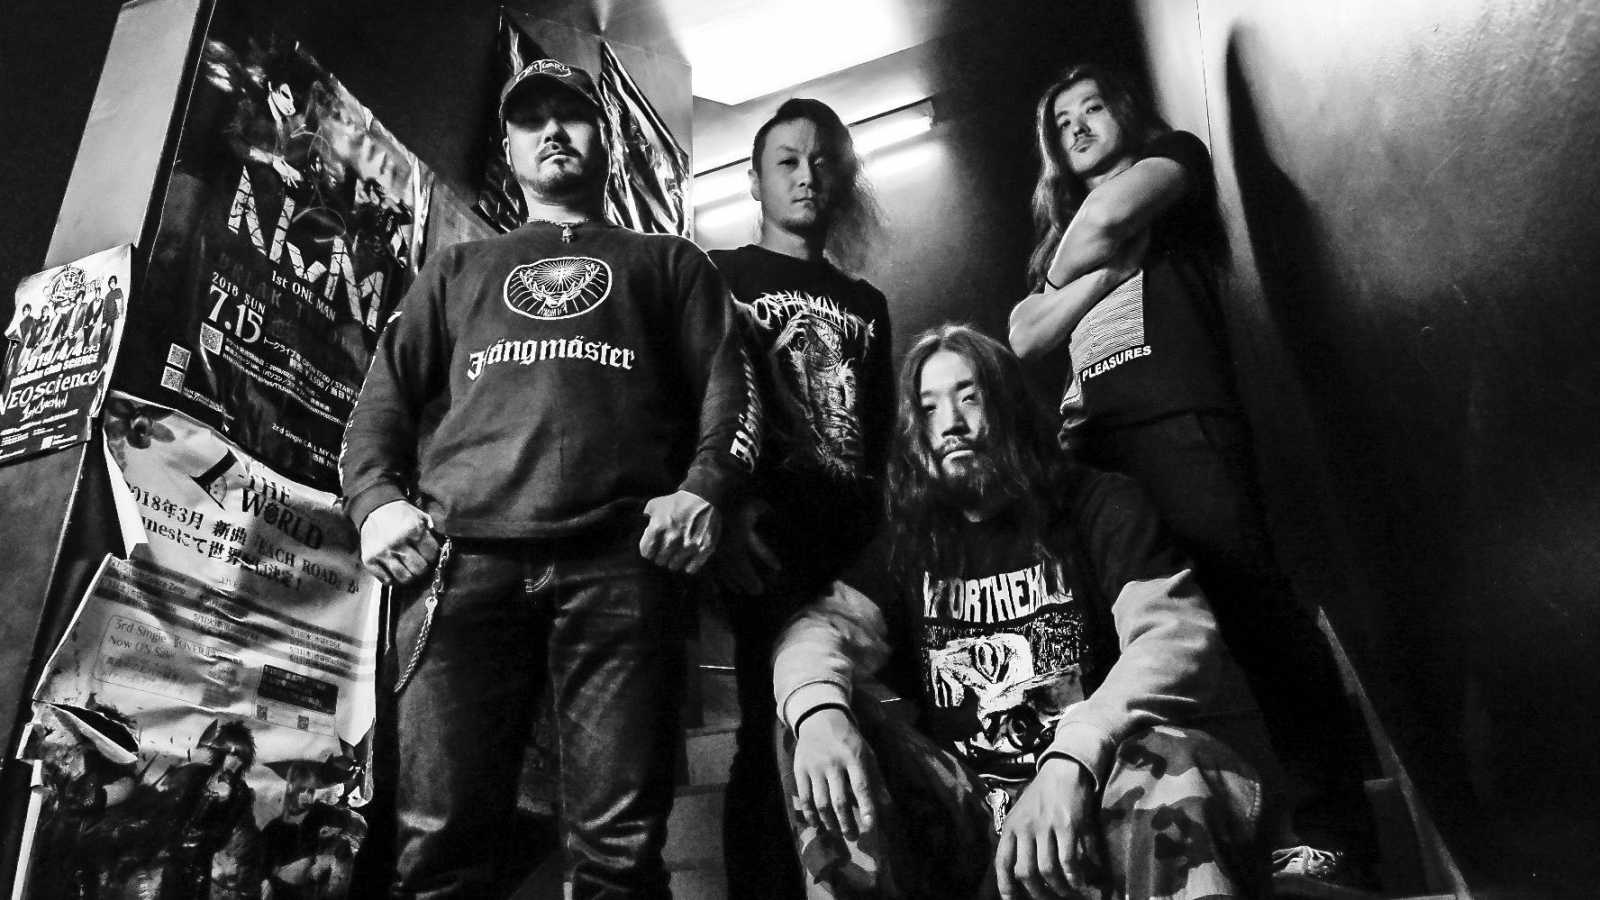 IN FOR THE KILL Announce European Release of Debut Album © IN FOR THE KILL. All rights reserved.